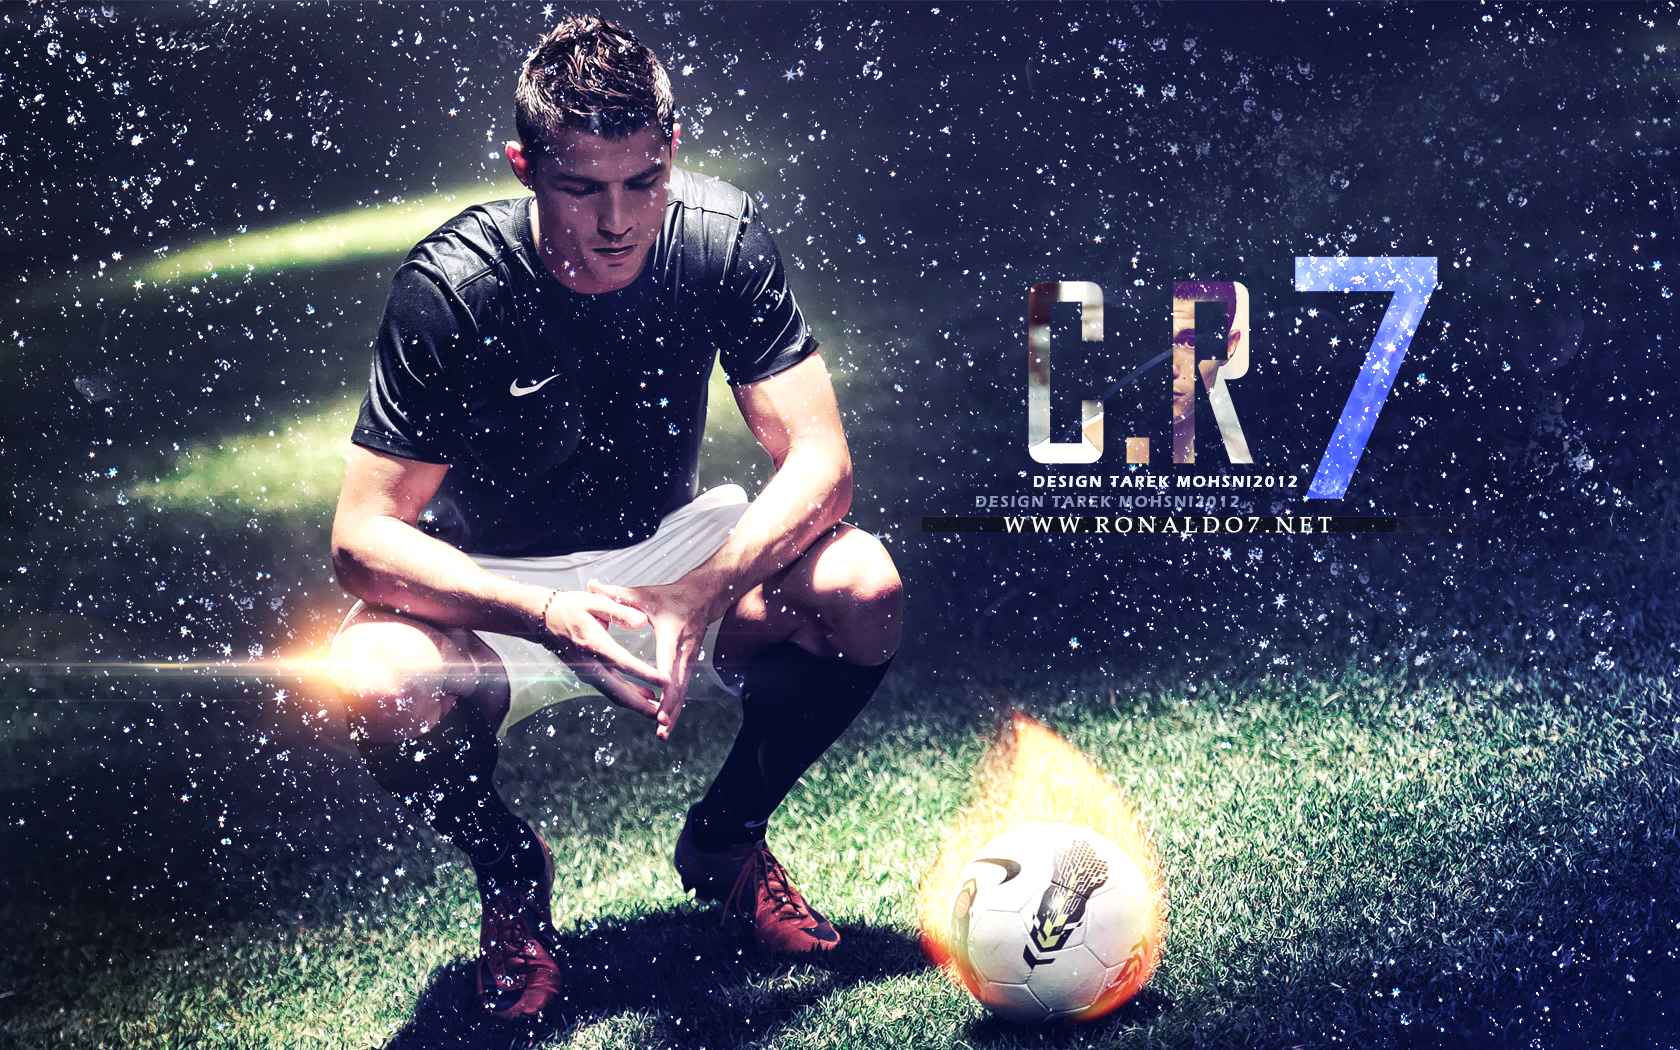 Cristiano Ronaldo Wallpapers 2013 HD